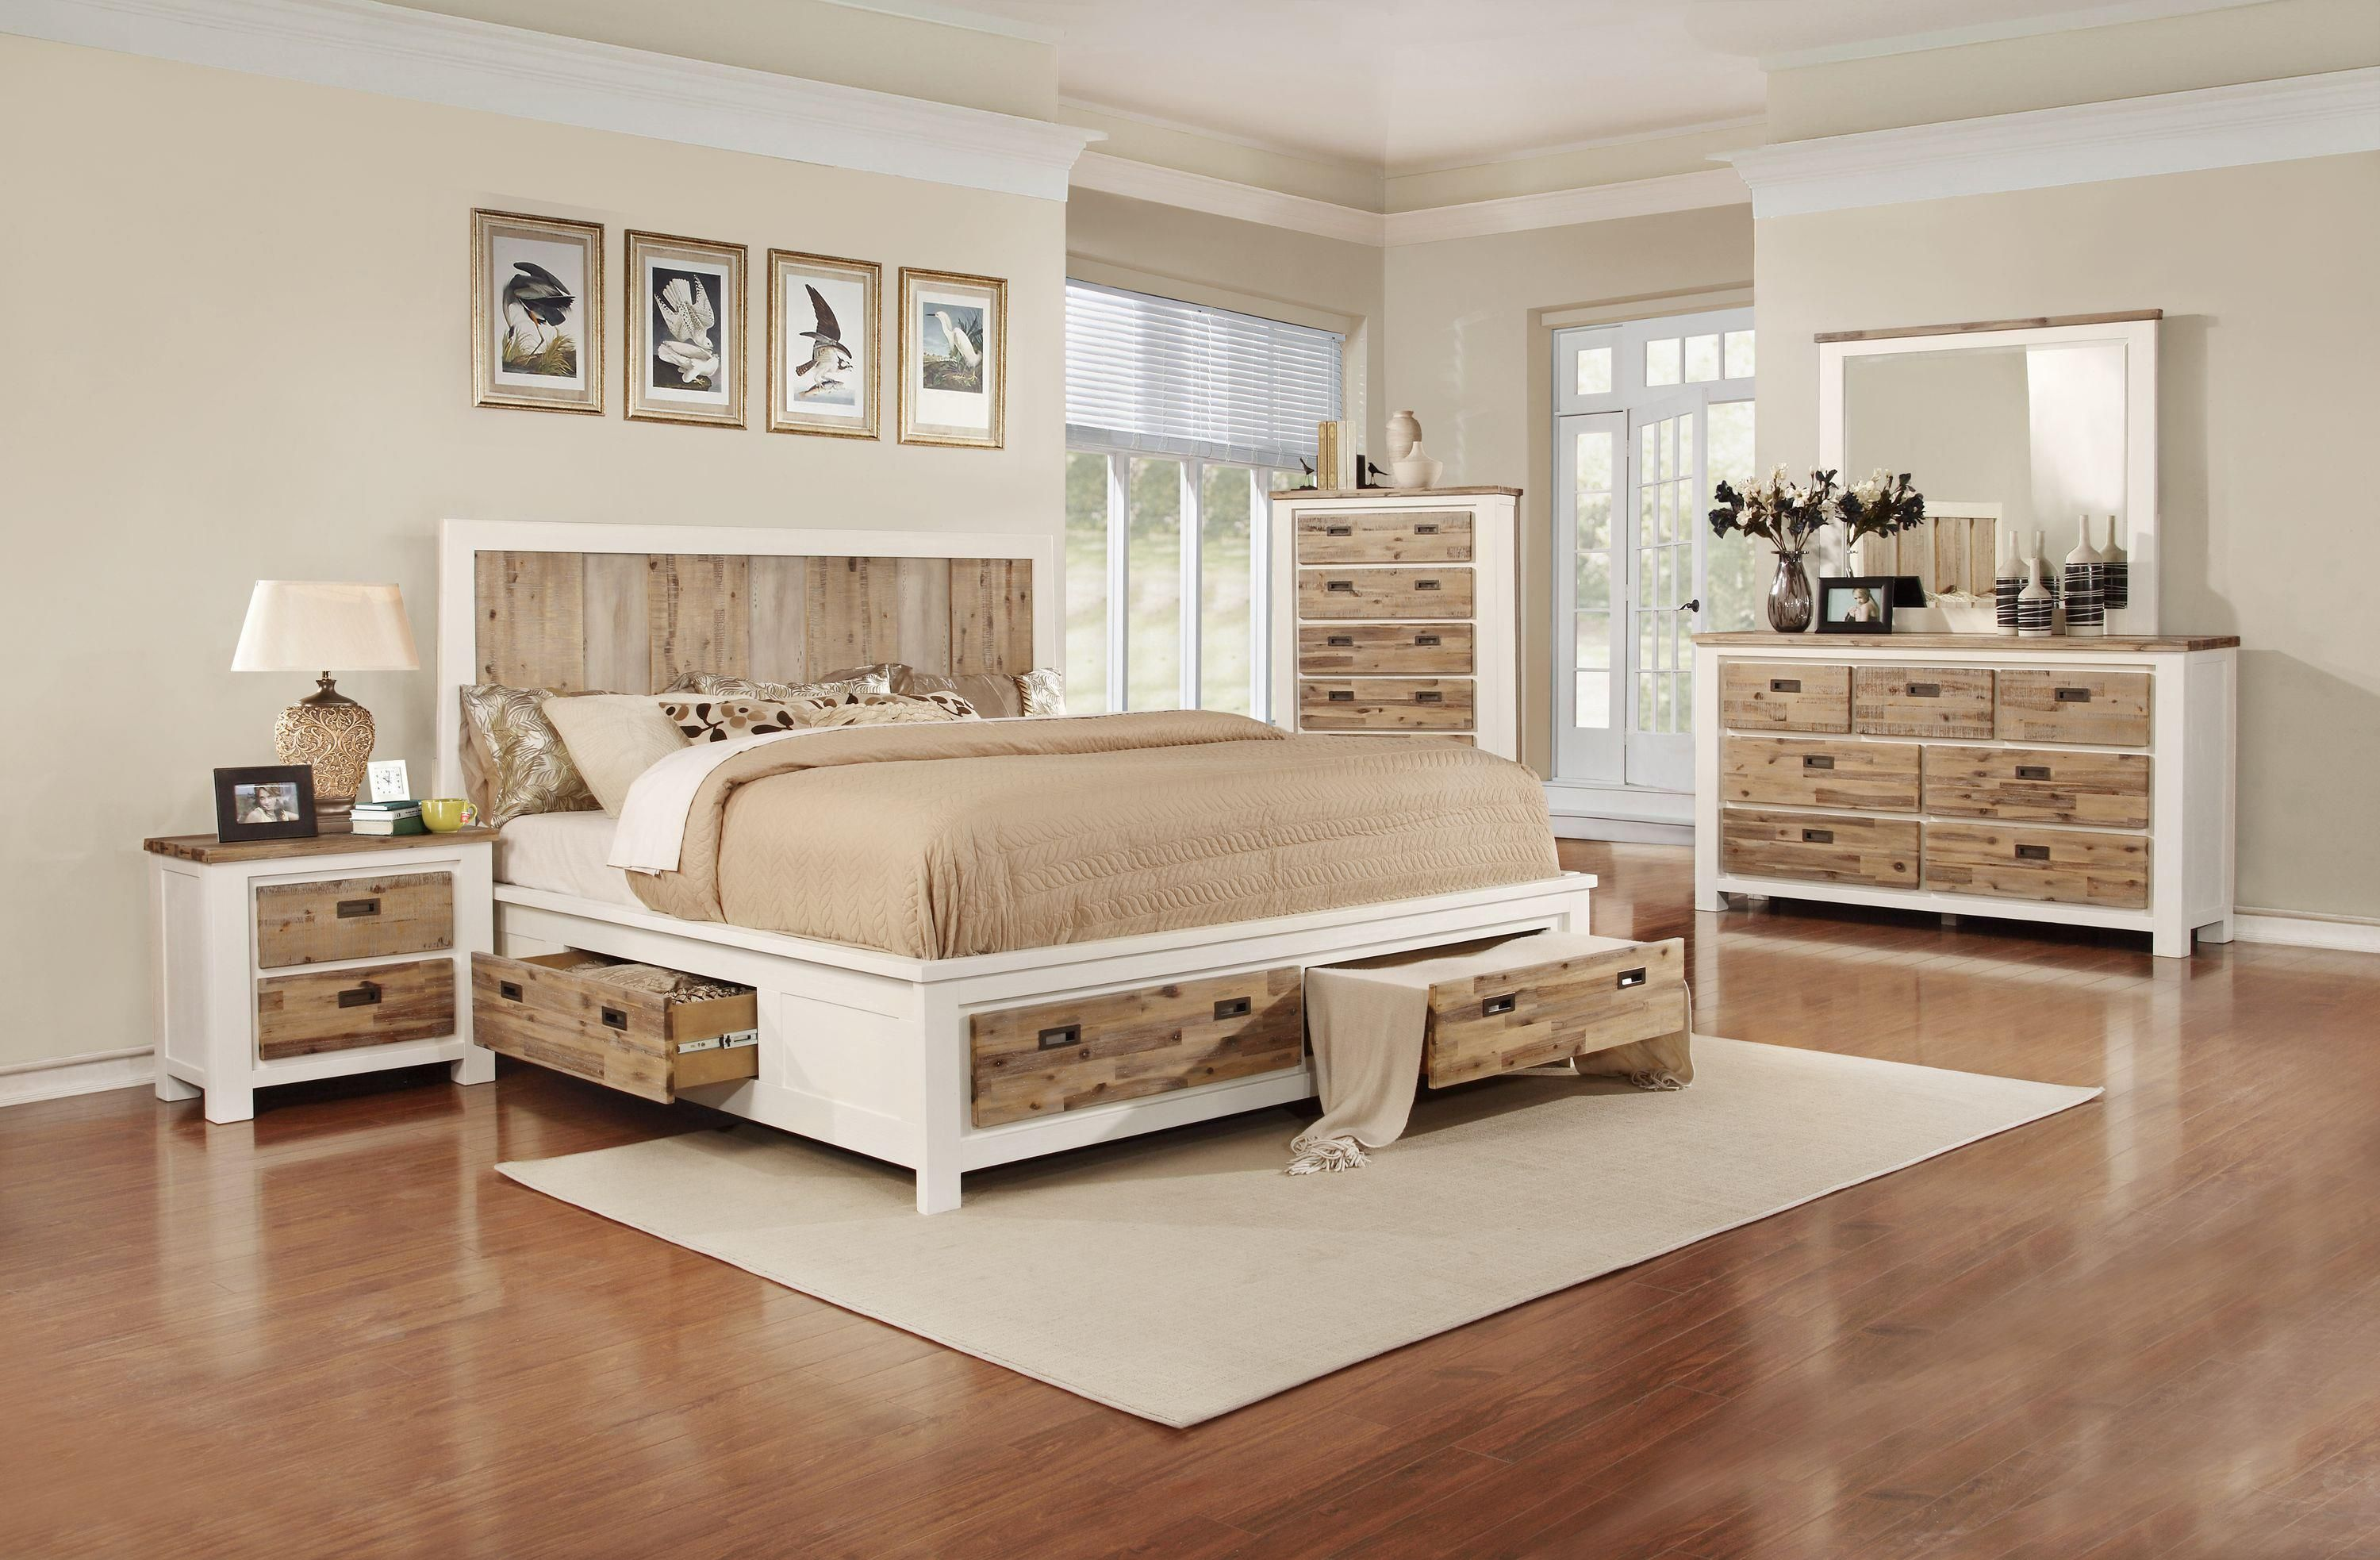 C347 Queen Bed with Built-in Storage by Lifestyle at ...